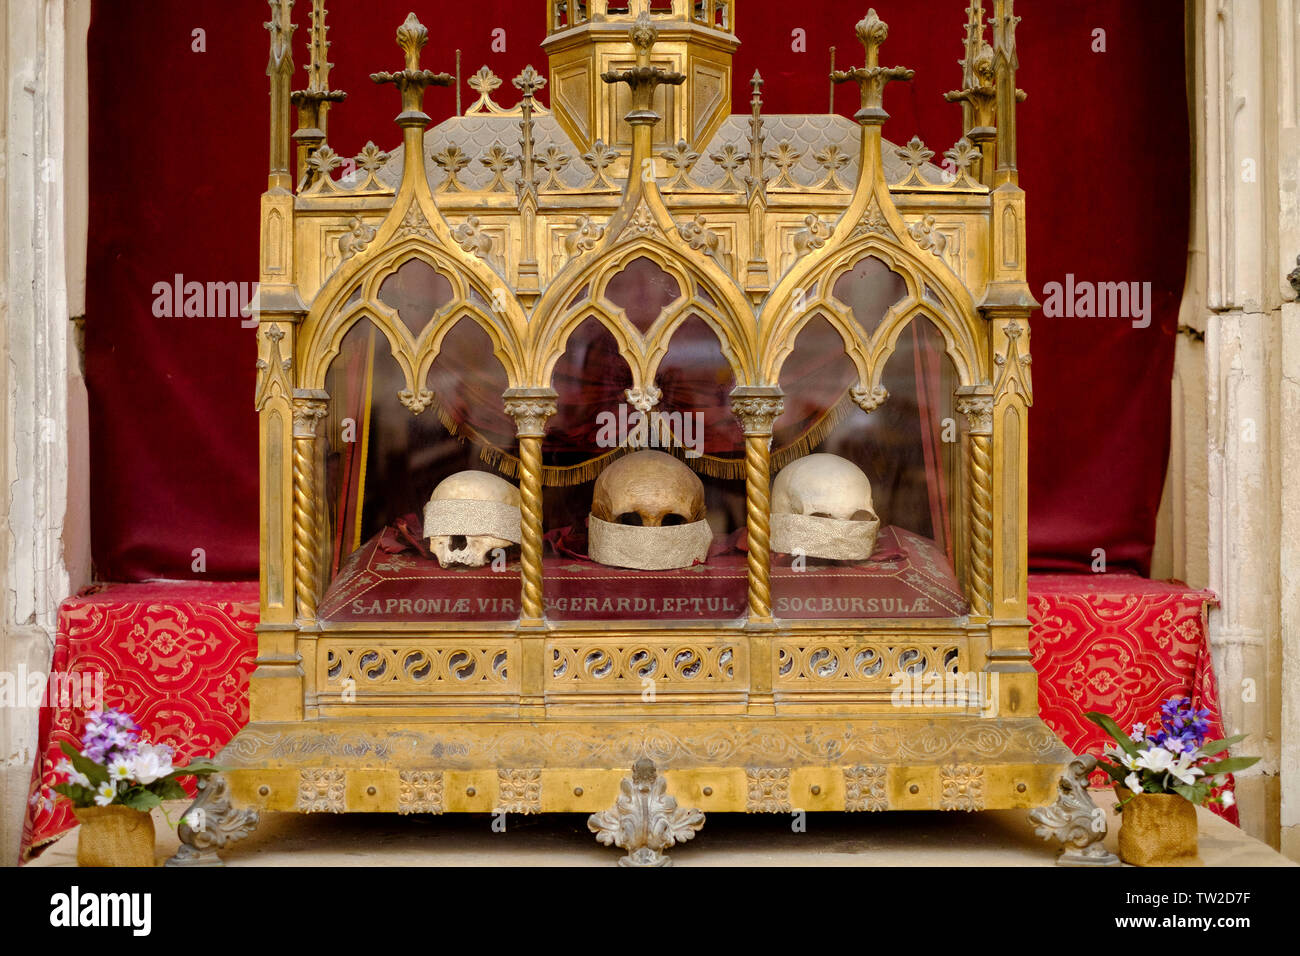 """Toul (north-eastern France): chapel of Toul Cathedral (""""Cathedrale Saint-Etienne de Toul"""") with the altar and relics of Sainte-Aprone, Saint-Gerard an - Stock Image"""